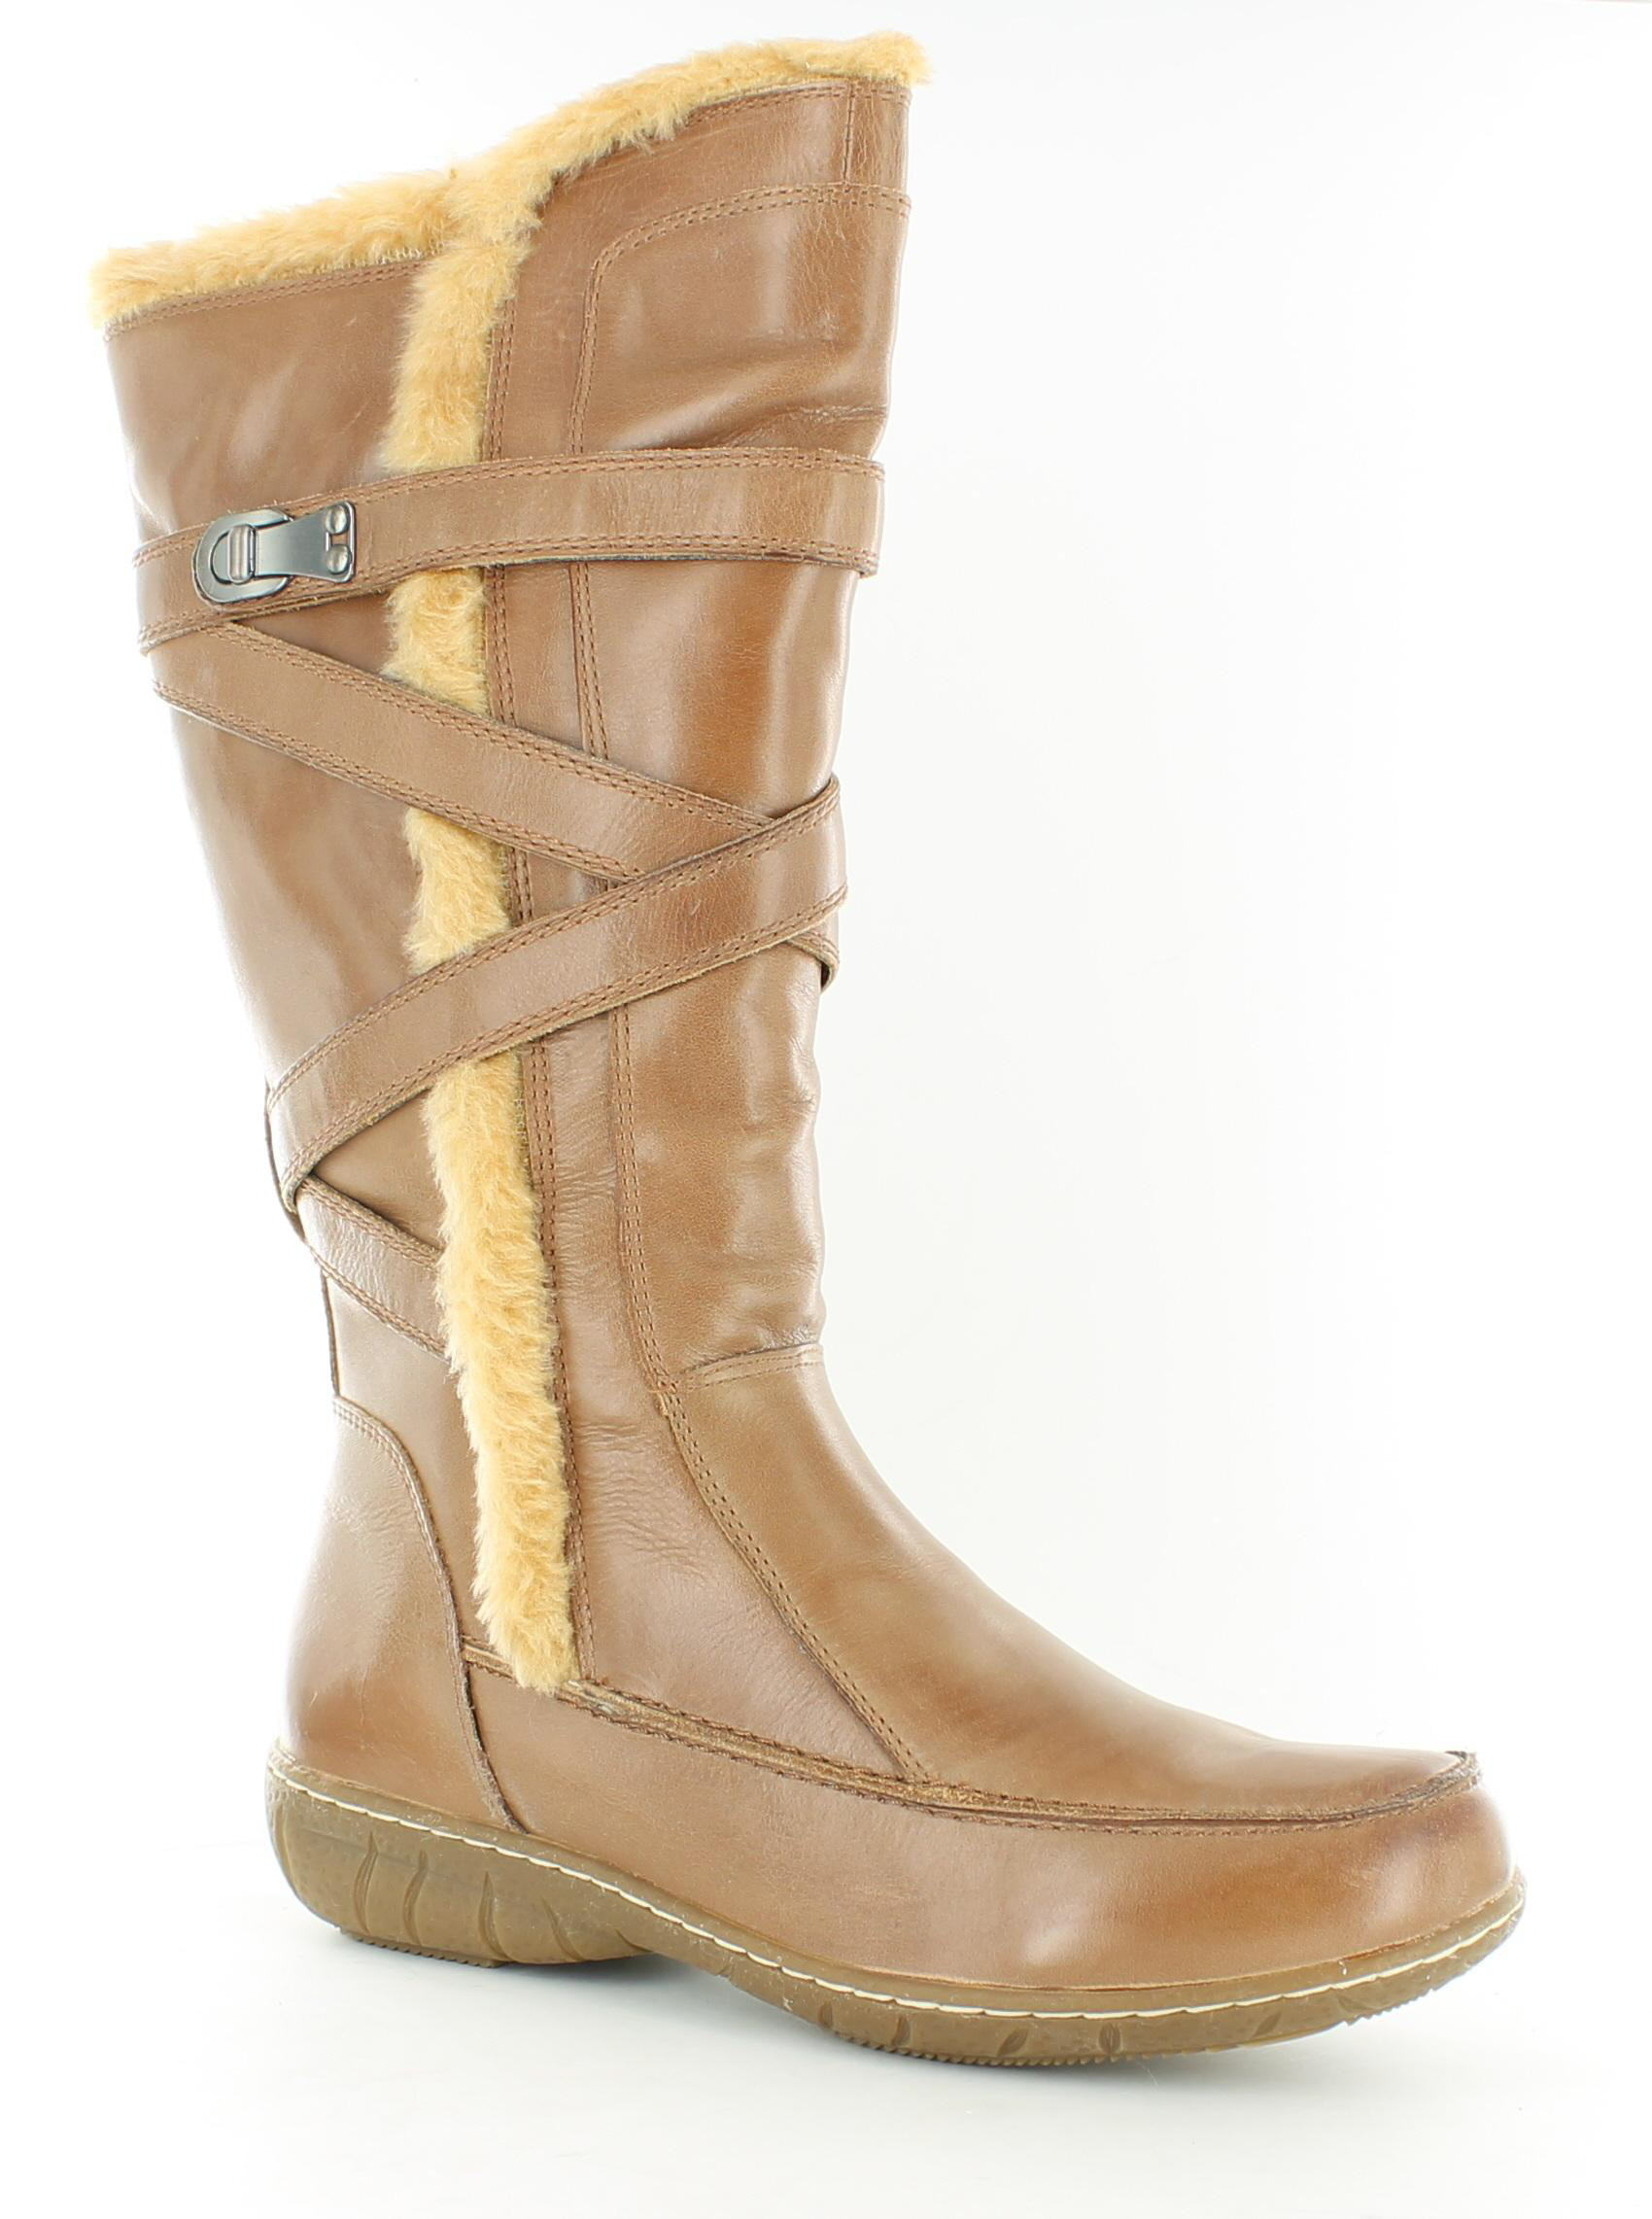 Amazing Hush Puppies Chamber 14 Leather Boots For Women In Tan Leather